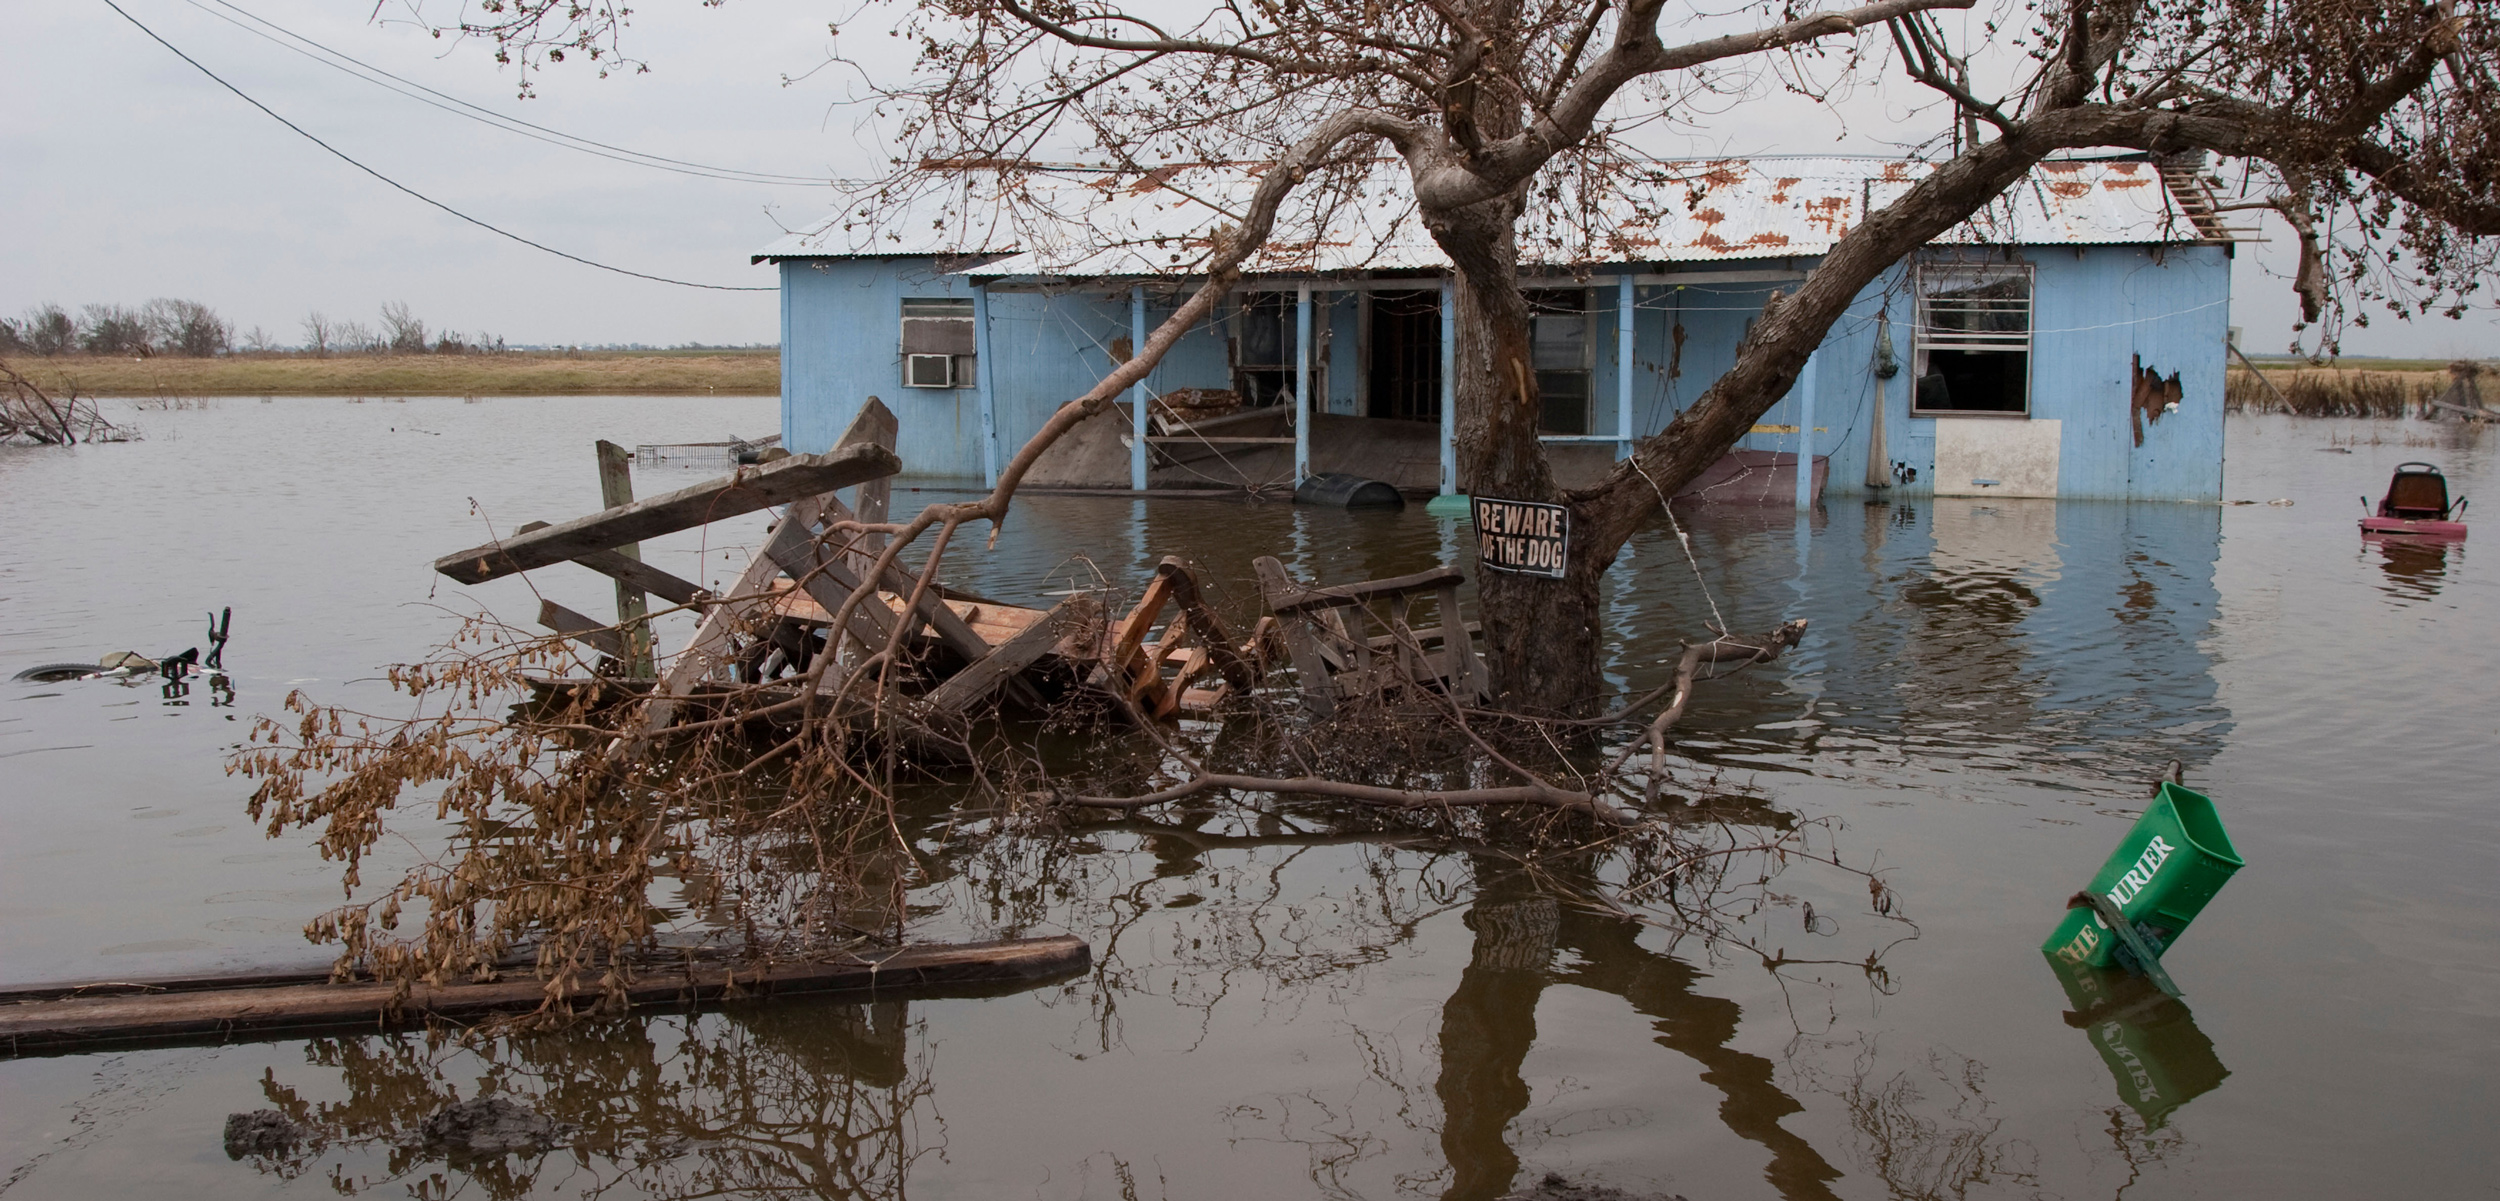 Flooded house in Isle de Jean Charles, Louisiana